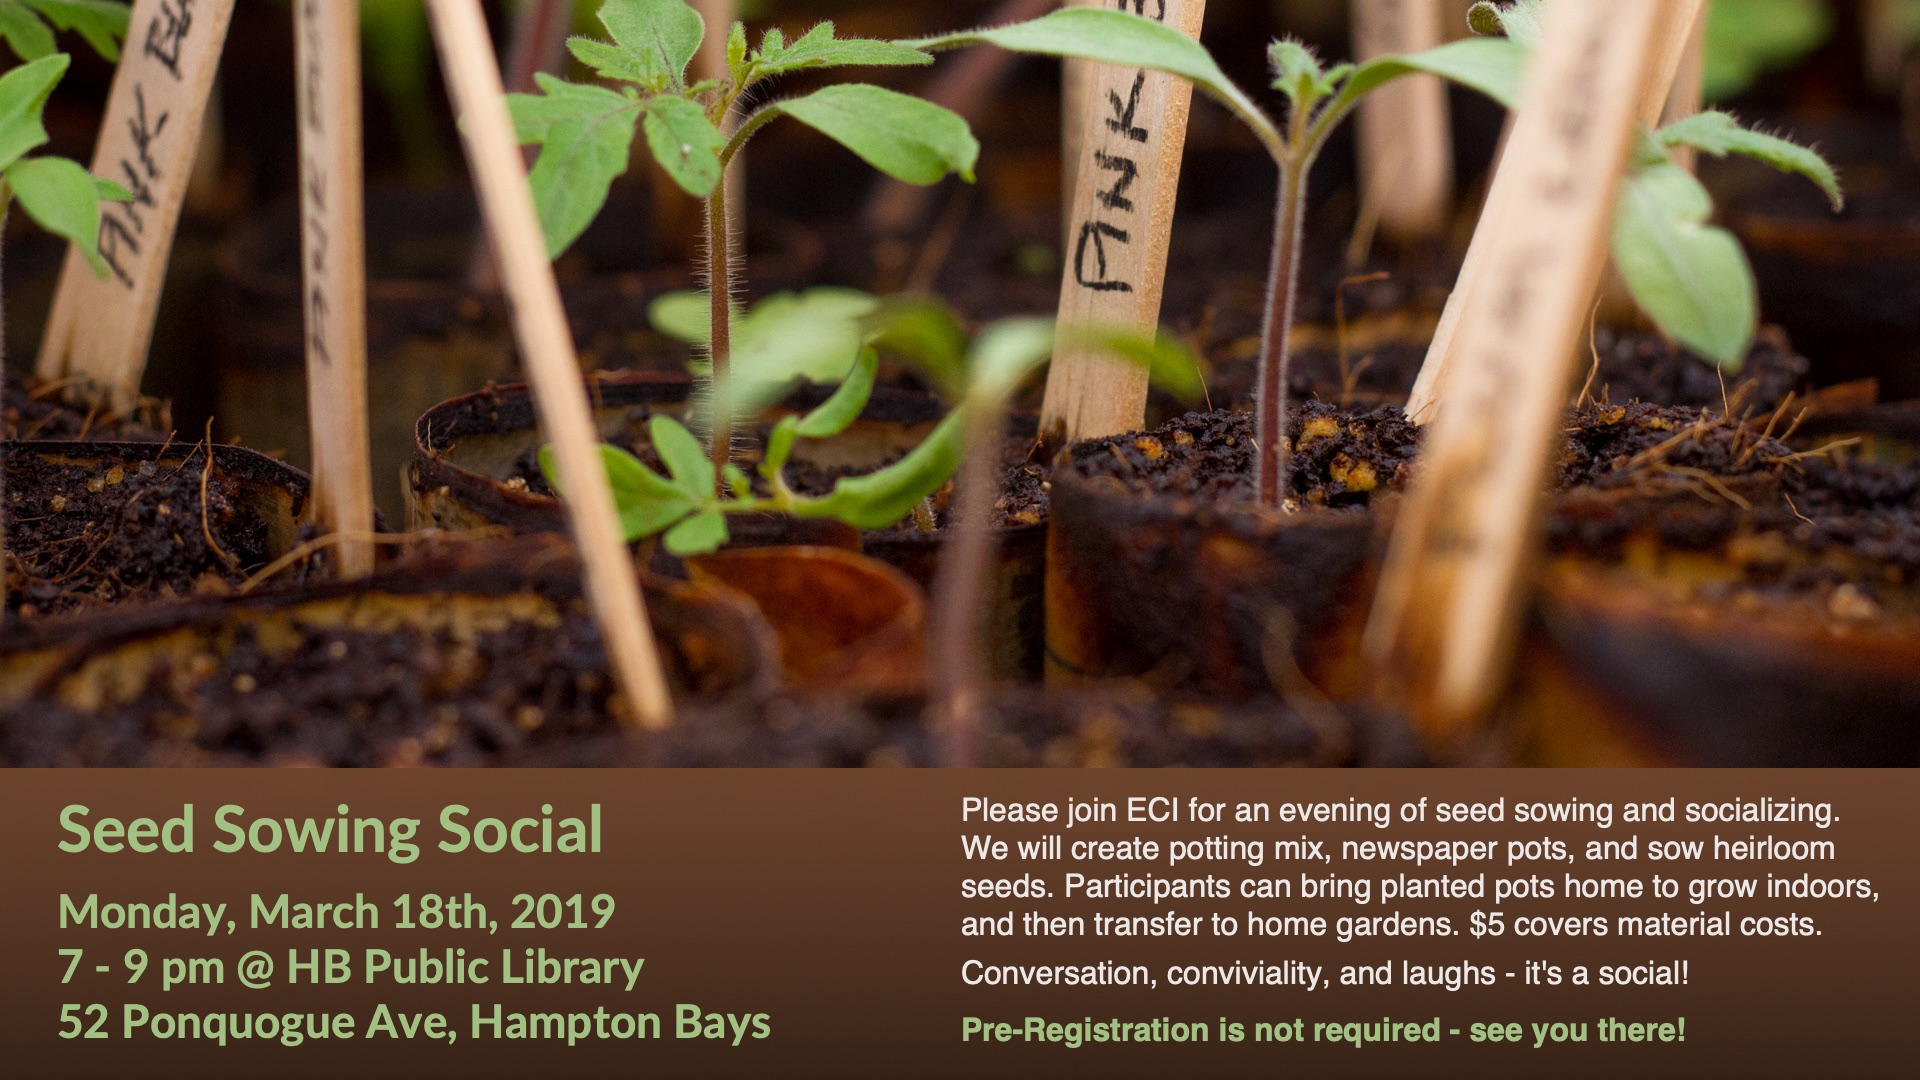 Seed Sowing Social - Mar 18th, 2019 - FB cover 1920x1080.jpg